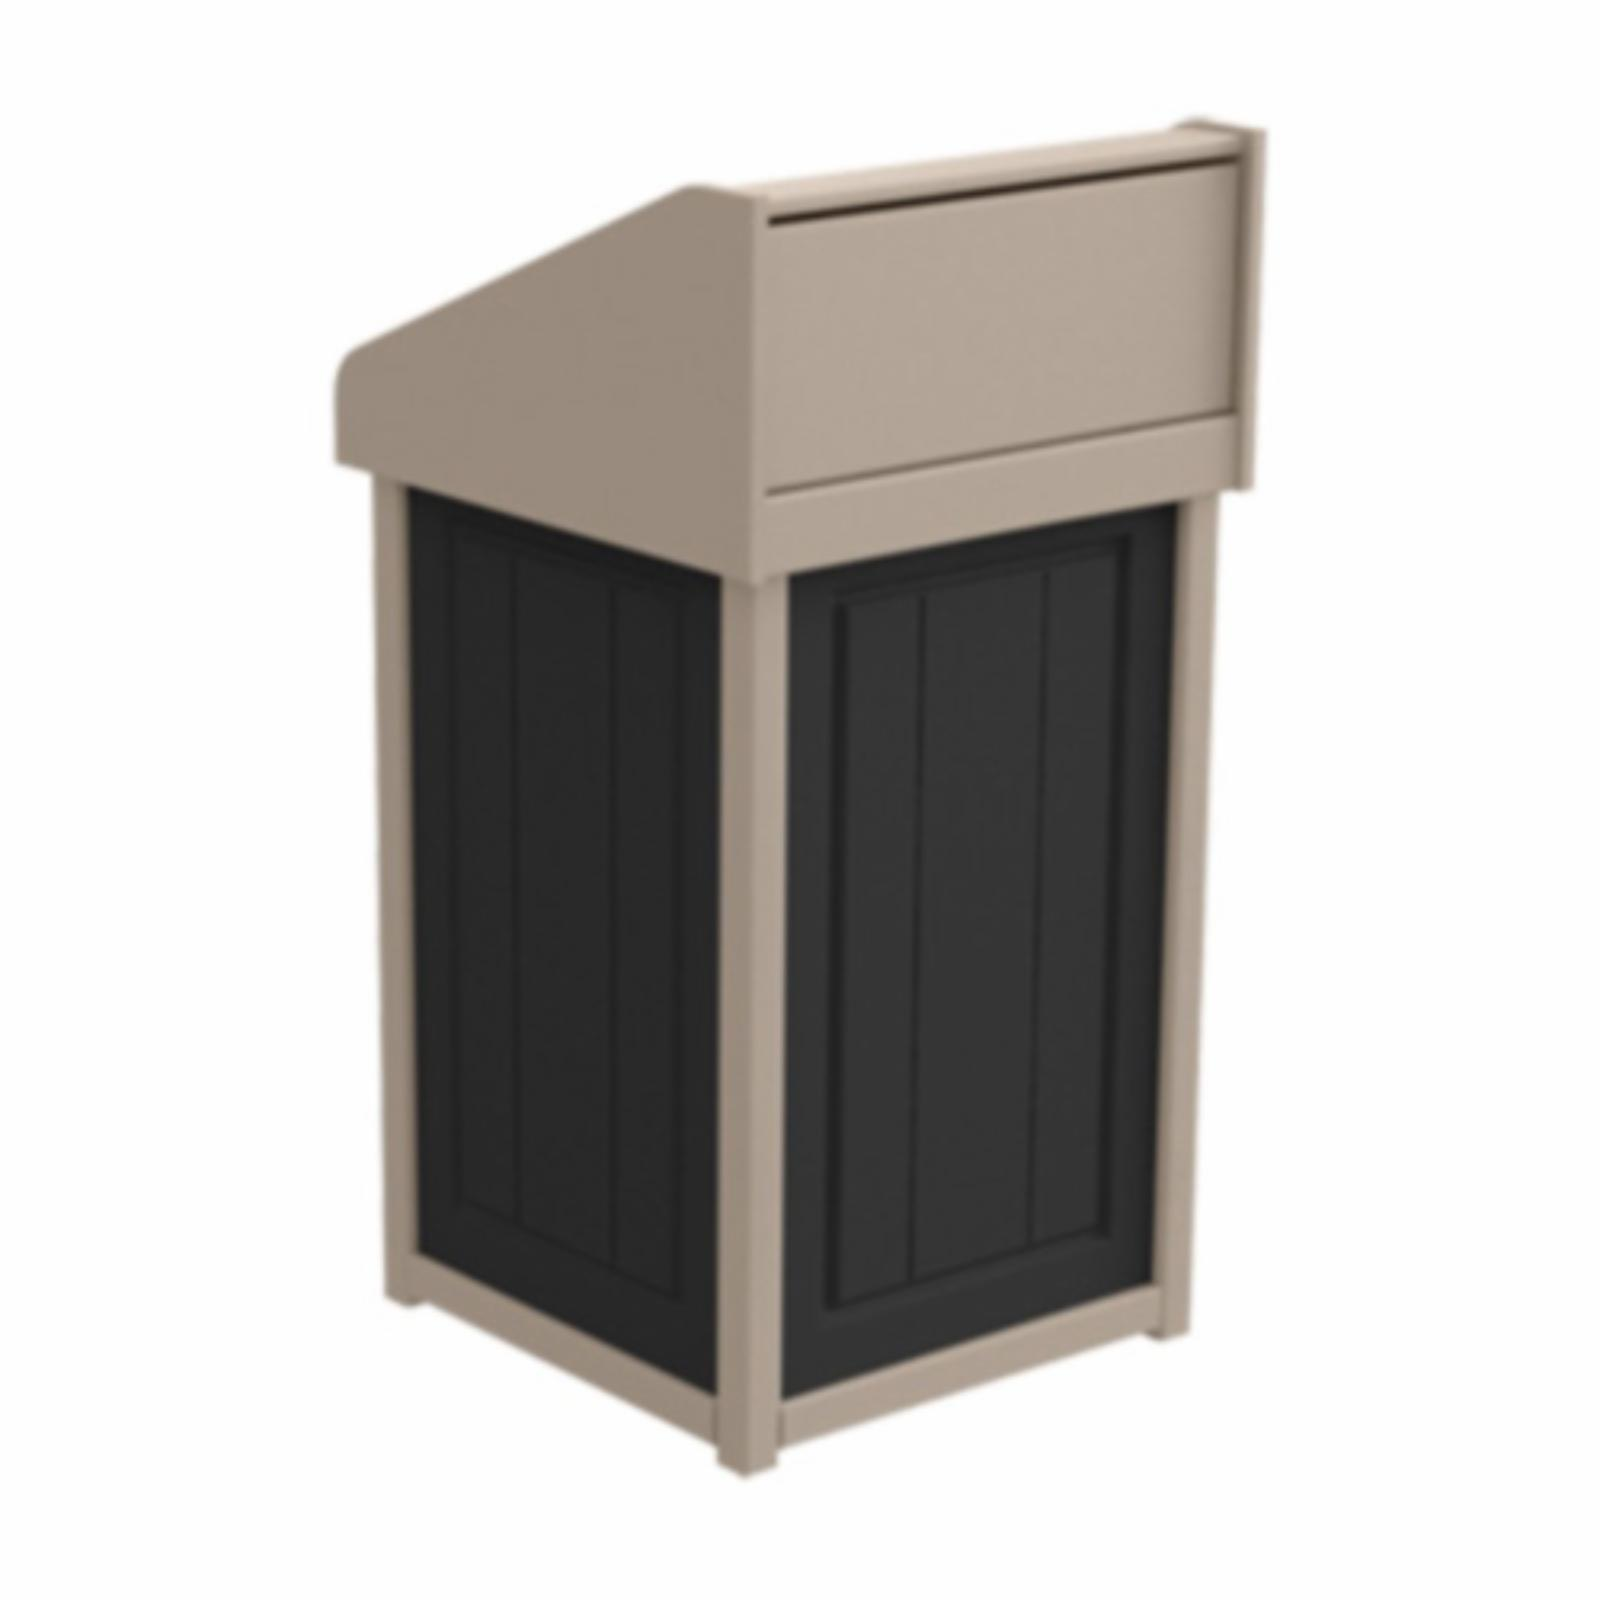 Treetop Products Two-Tone 33 Gallon Square Side Load Outdoor Push Door Trash Receptacle Black/Desert Tan - 4ZK4749-BK/DT